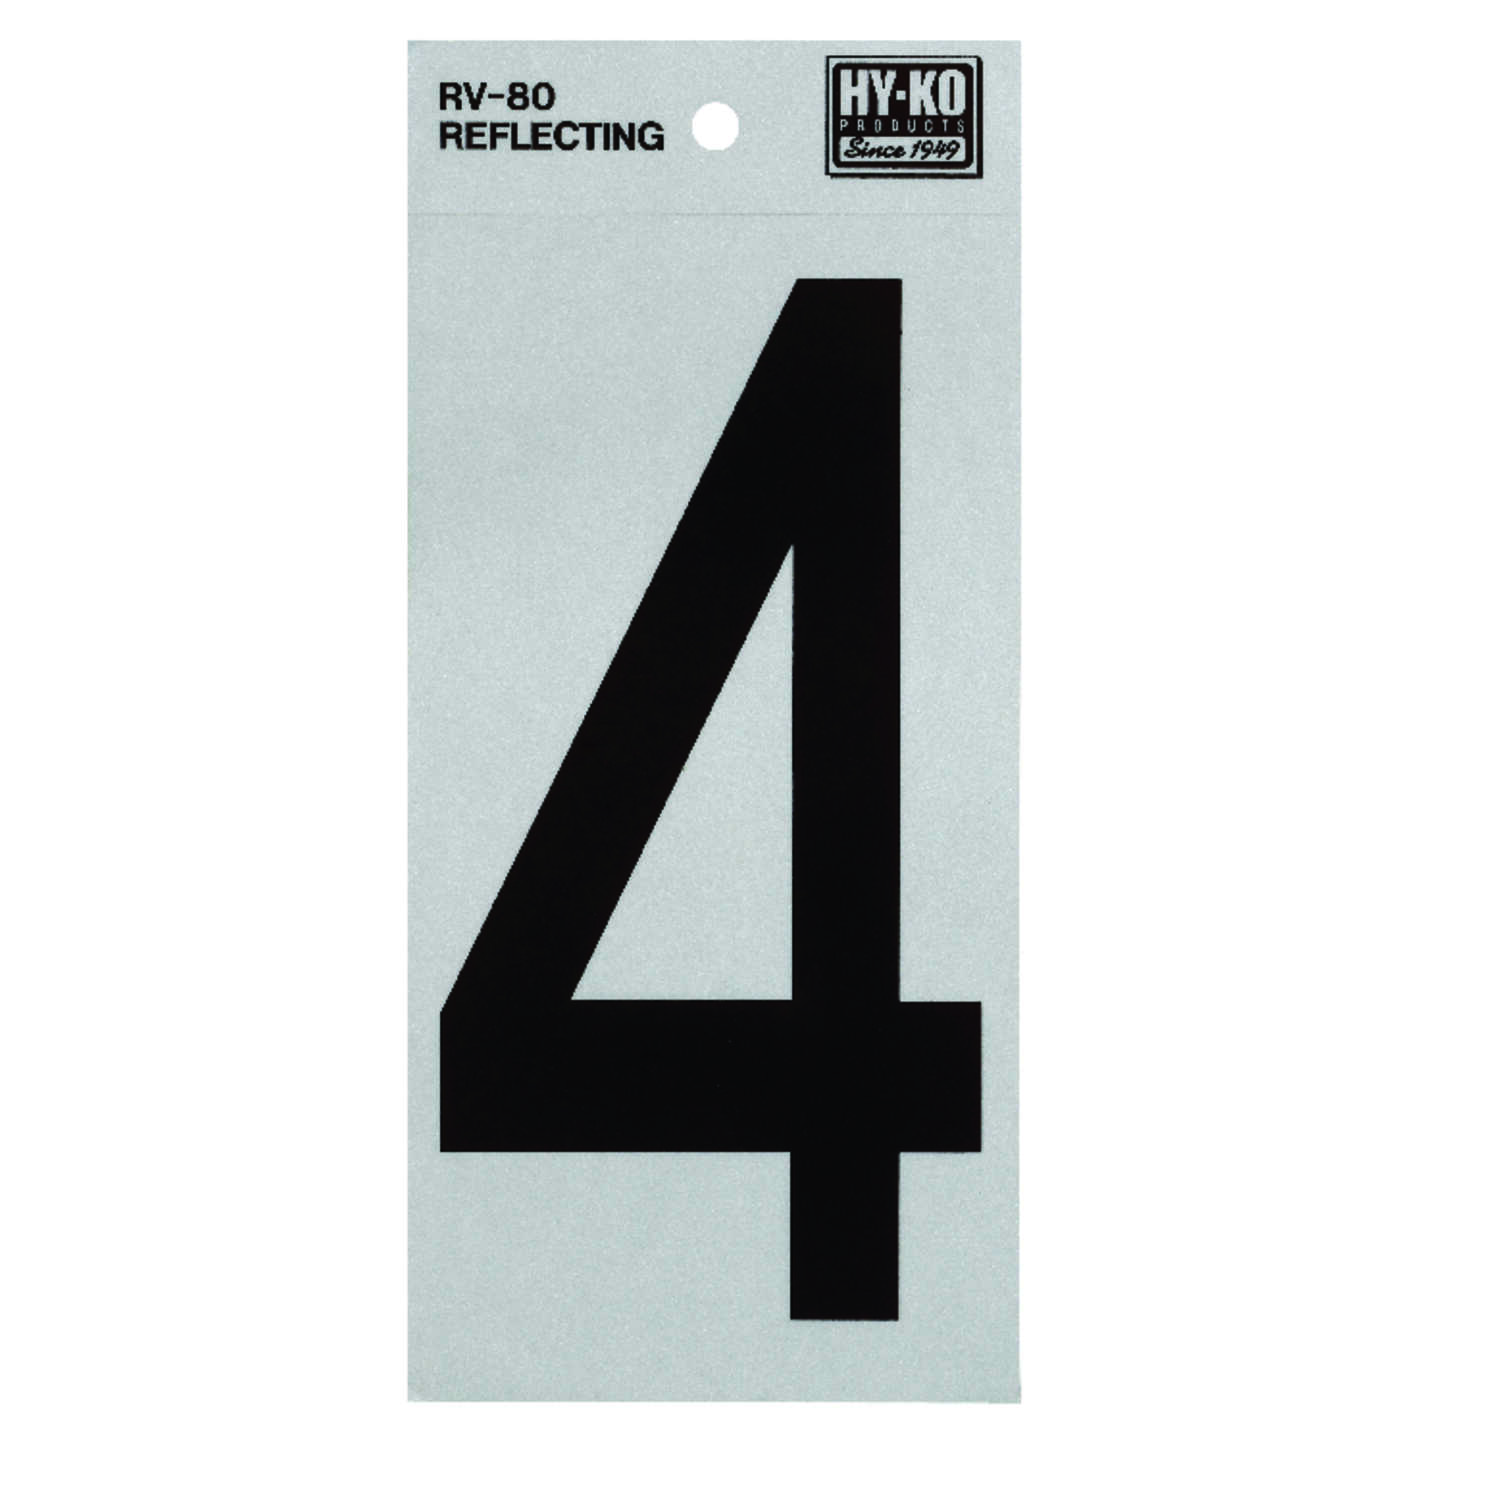 Hy-Ko  Reflective Vinyl  6 in. 4  Number  Self-Adhesive  Black